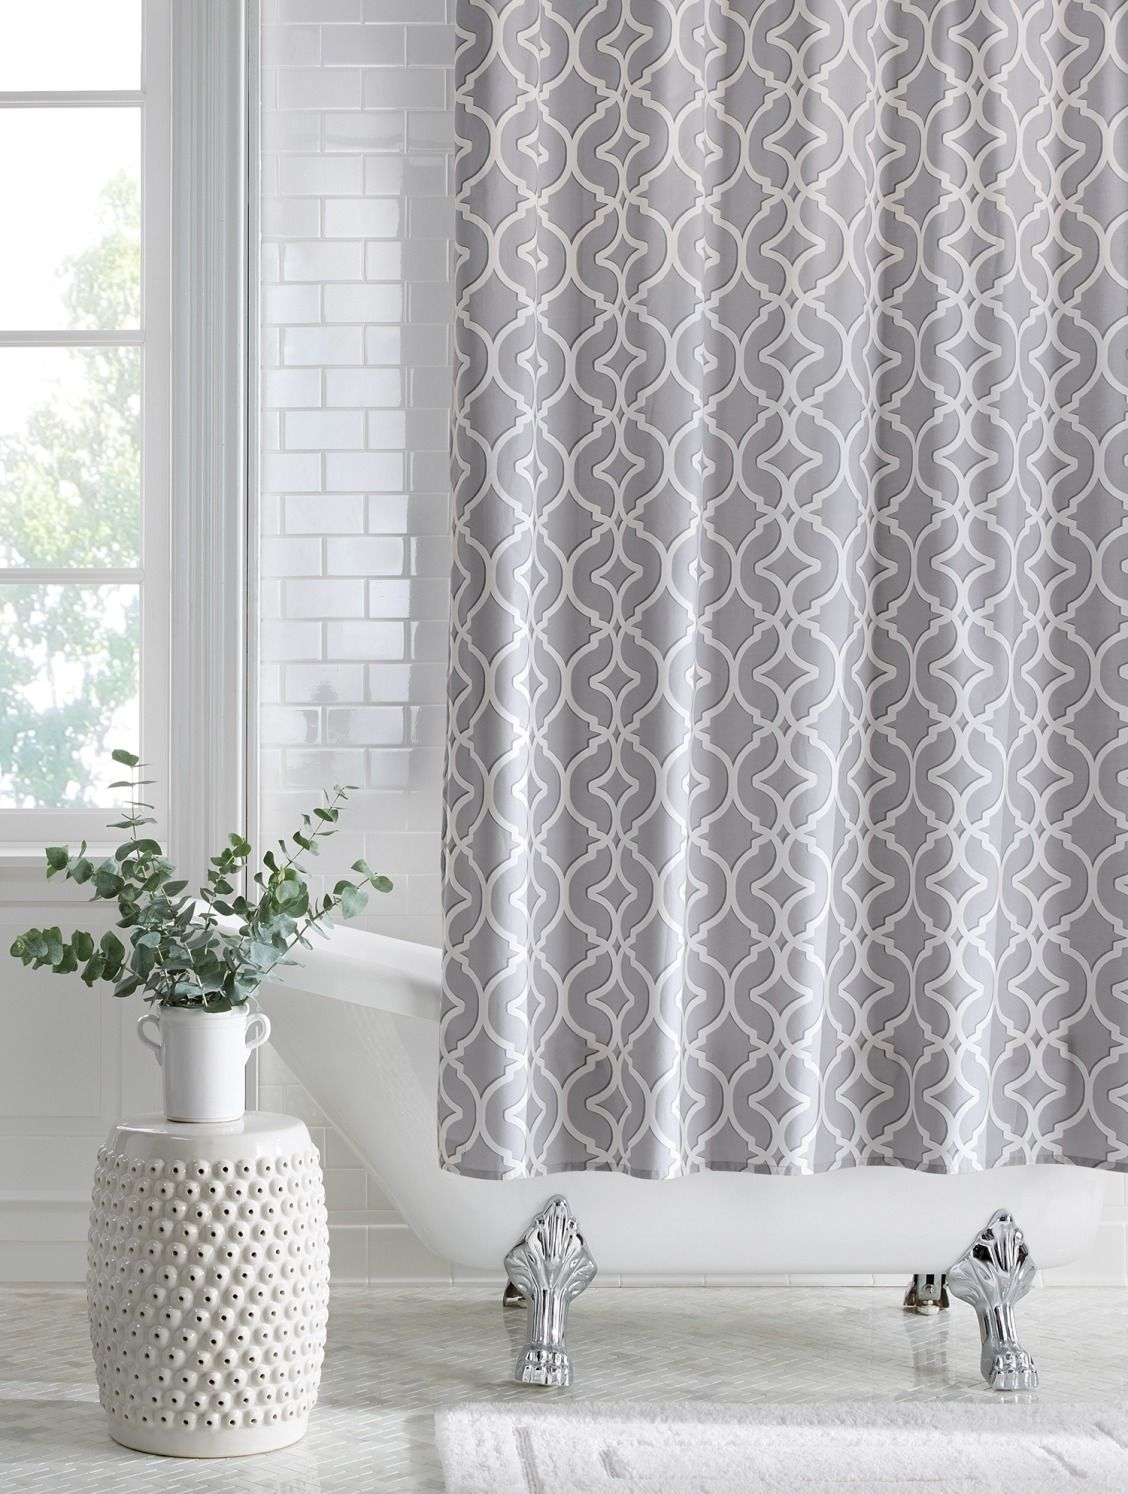 Update your bathroom with a new shower curtain. A pretty pattern ...